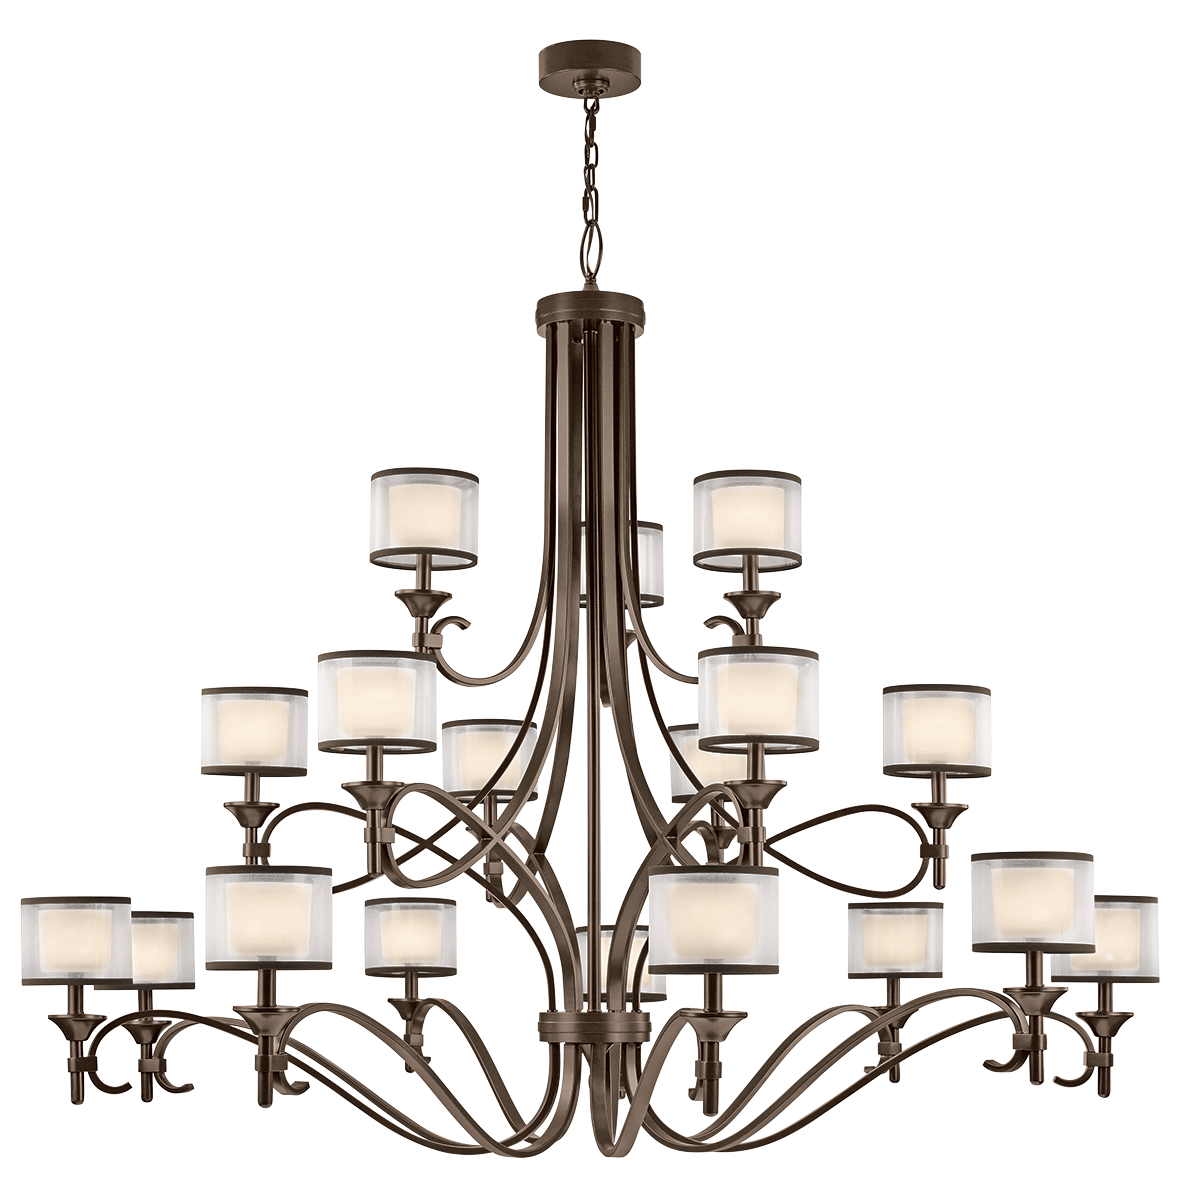 Cartoon chandelier png. Lacey light grand in